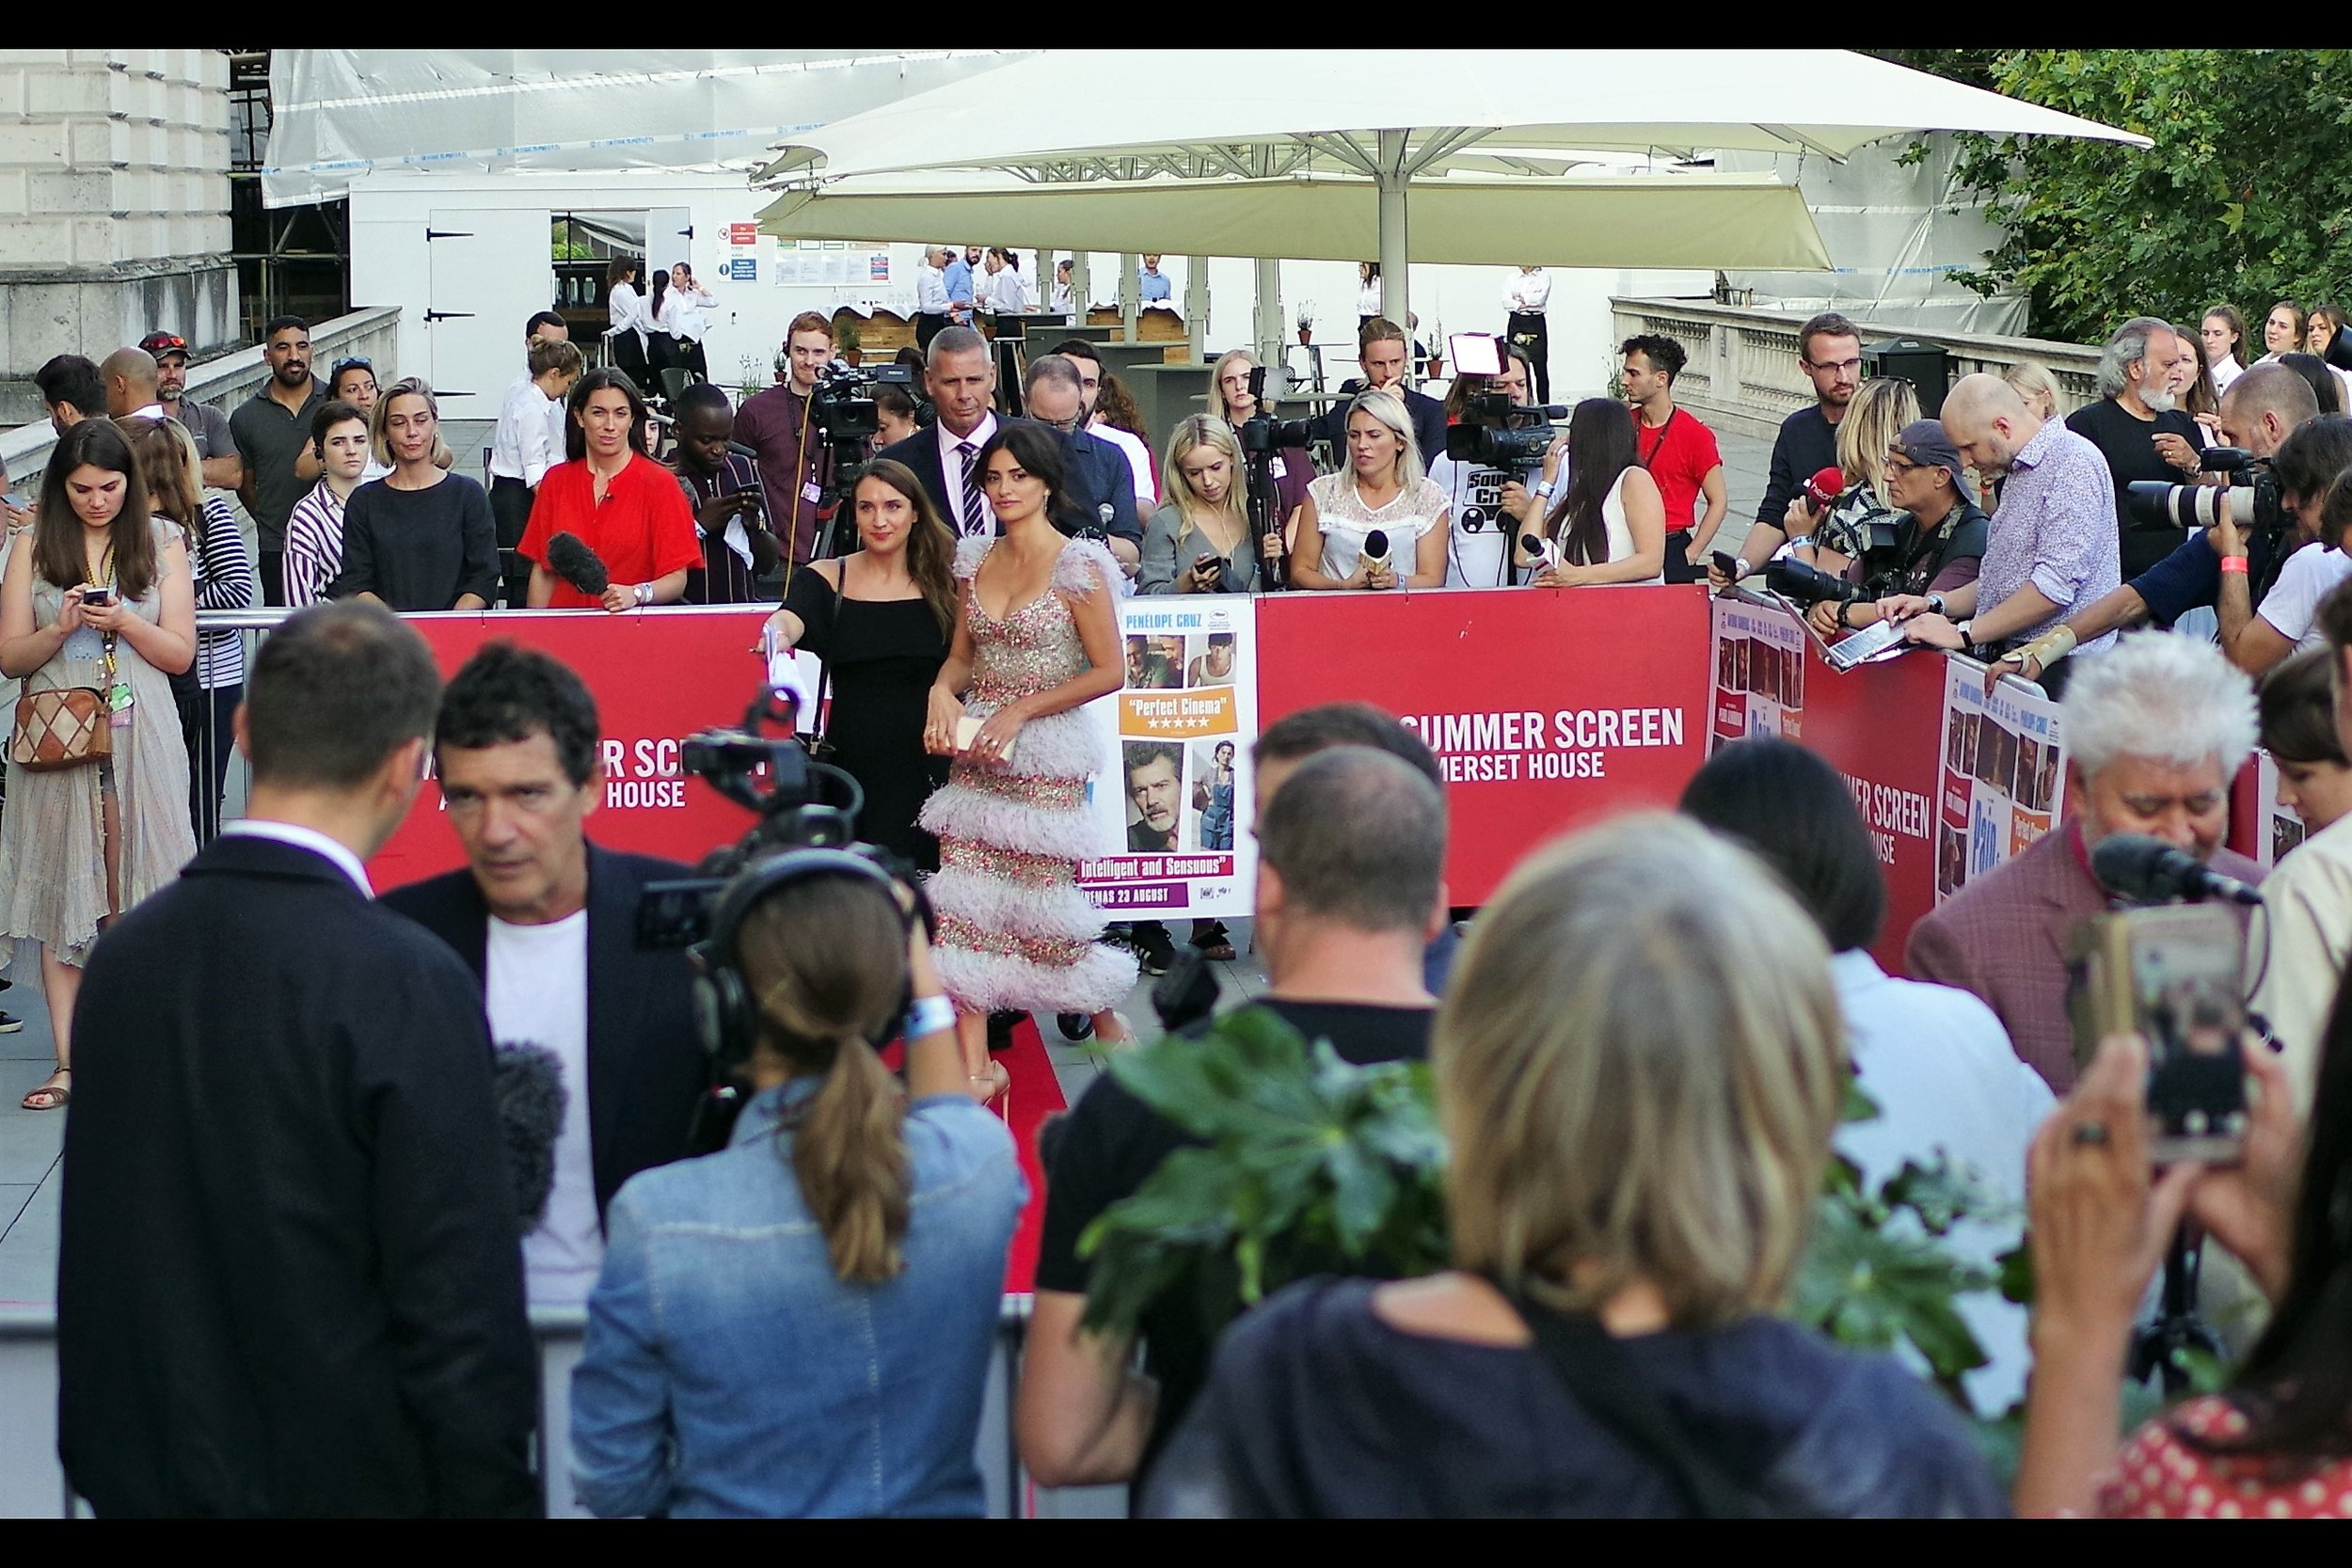 If you can tear your eyes away from the blurry Antonio Banderas in the foreground ( ,…. ladies,   ) - Penelope Cruz might finally have finished doing interviews at the far end and could be moving over here. And I might take another sip from my San Miguel as she makes her way over.